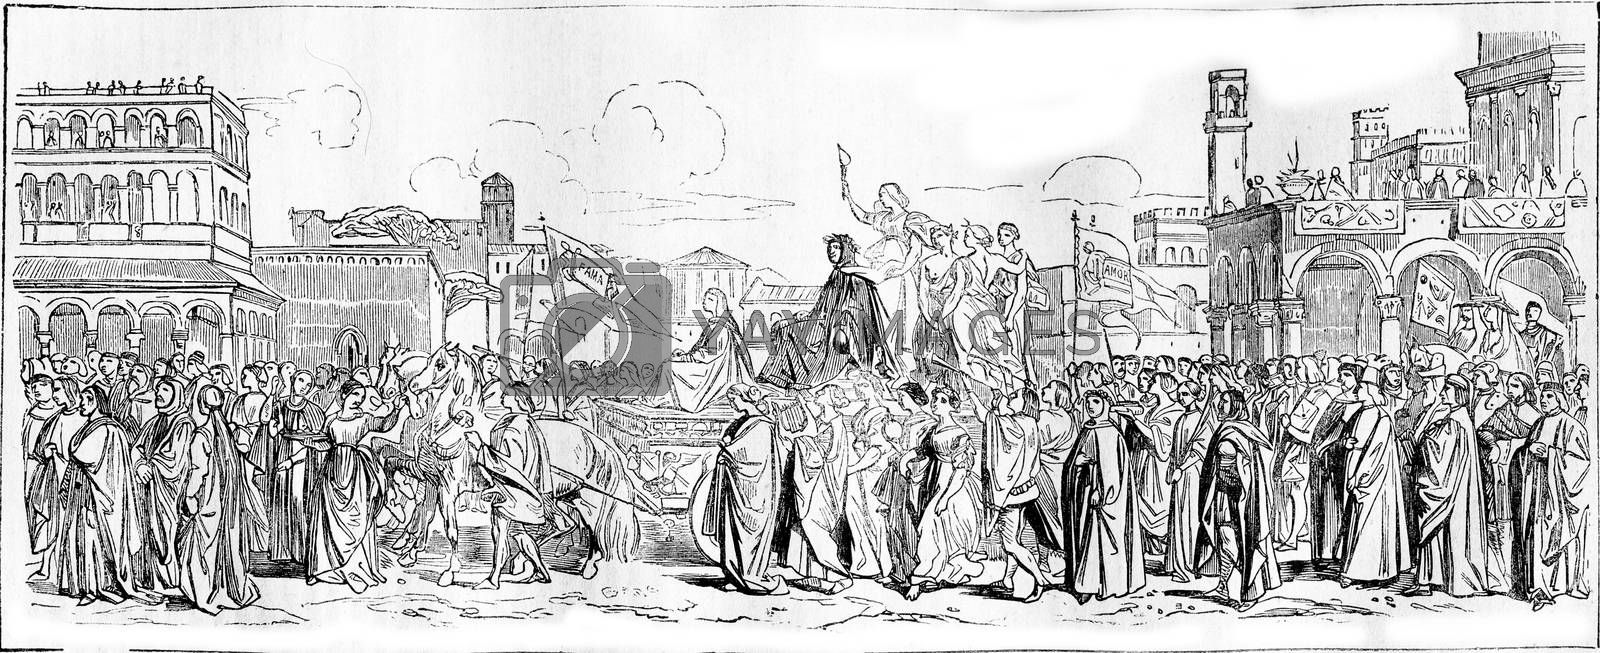 1836 Exhibition of Painting, The Triumph of Petrarch, vintage engraved illustration. Magasin Pittoresque 1836.